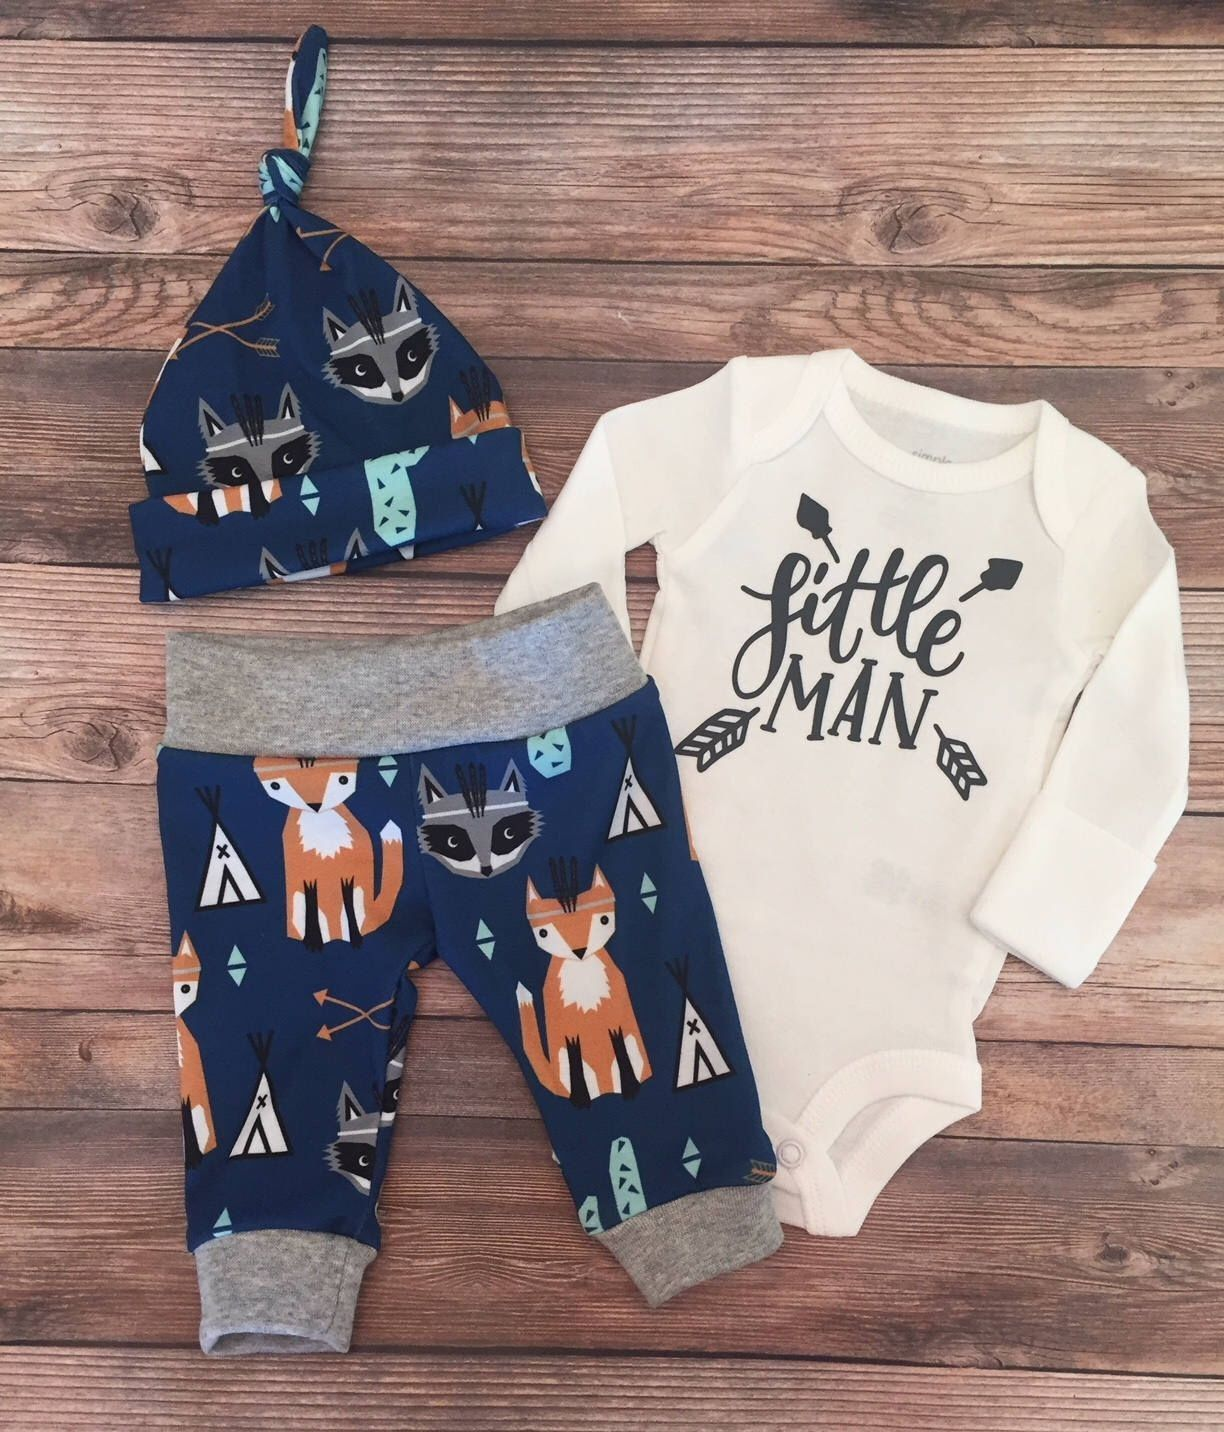 0b415dec97b0d Baby Fashion Boy. See a excellent choice of infants and youngsters clothing  in particular new baby, small boys, girls and also unisex infant styles.